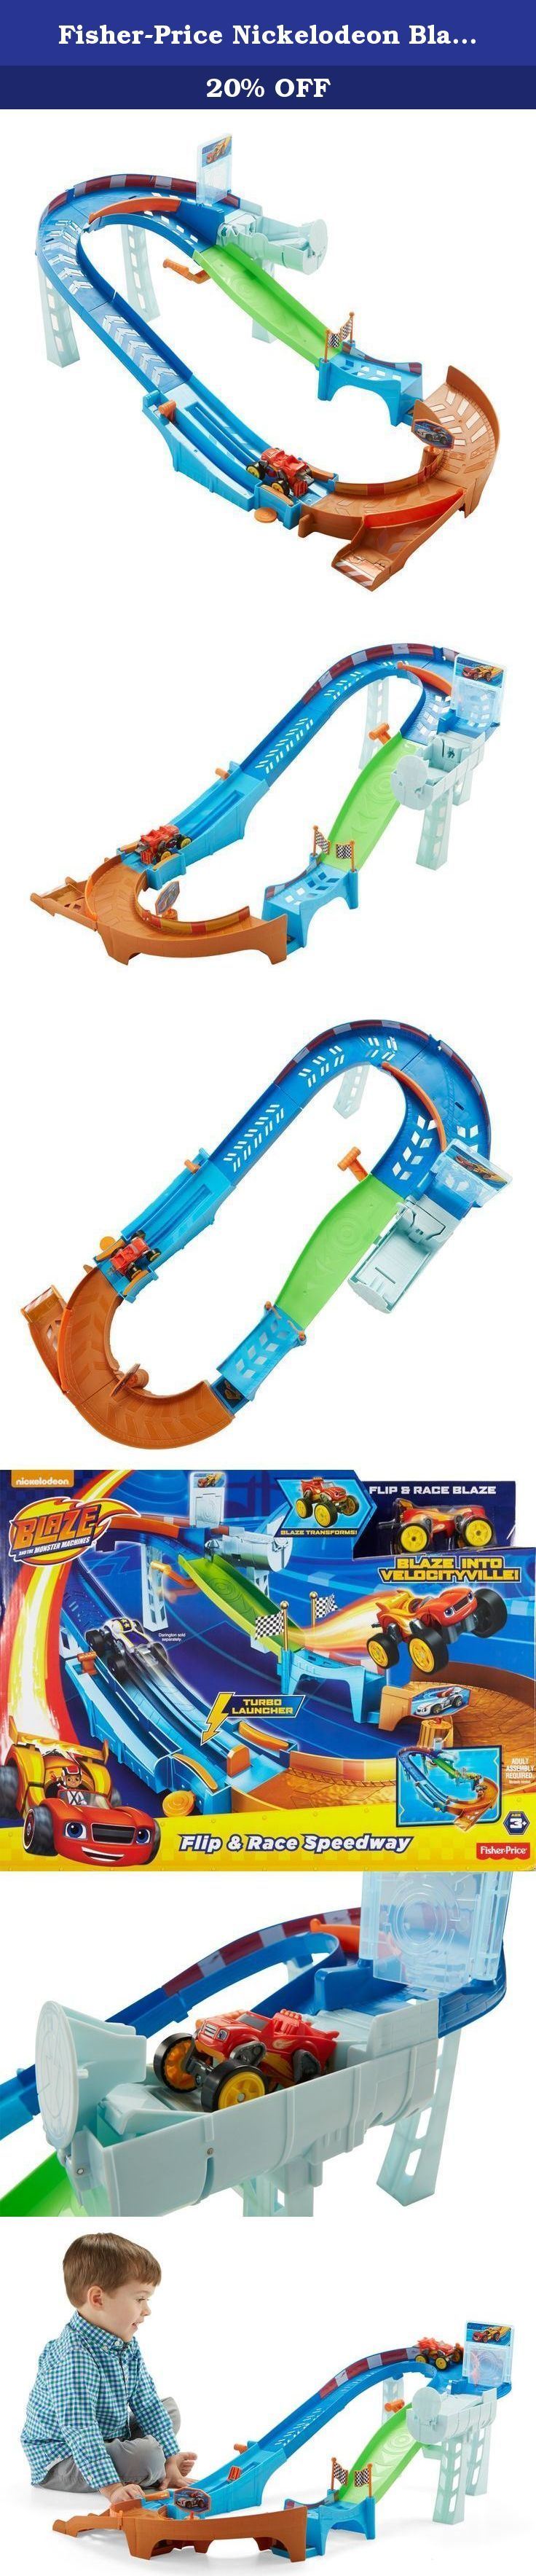 Fisher-Price Nickelodeon Blaze and the Monster Machines Flip & Race Speedway. Blaze is off to the races on the Velocityville speedway! Use the turbo launcher to clear the jump and zoom around the speedway. Blaze is fast, but if he wants to win this race, he's going to need more speed than ever before. Switch the track rails to send him into the transforming turbo flipper. With the simple flip of a lever, Blaze transforms from a monster truck into a race car! Now he's got the Blazing Speed…